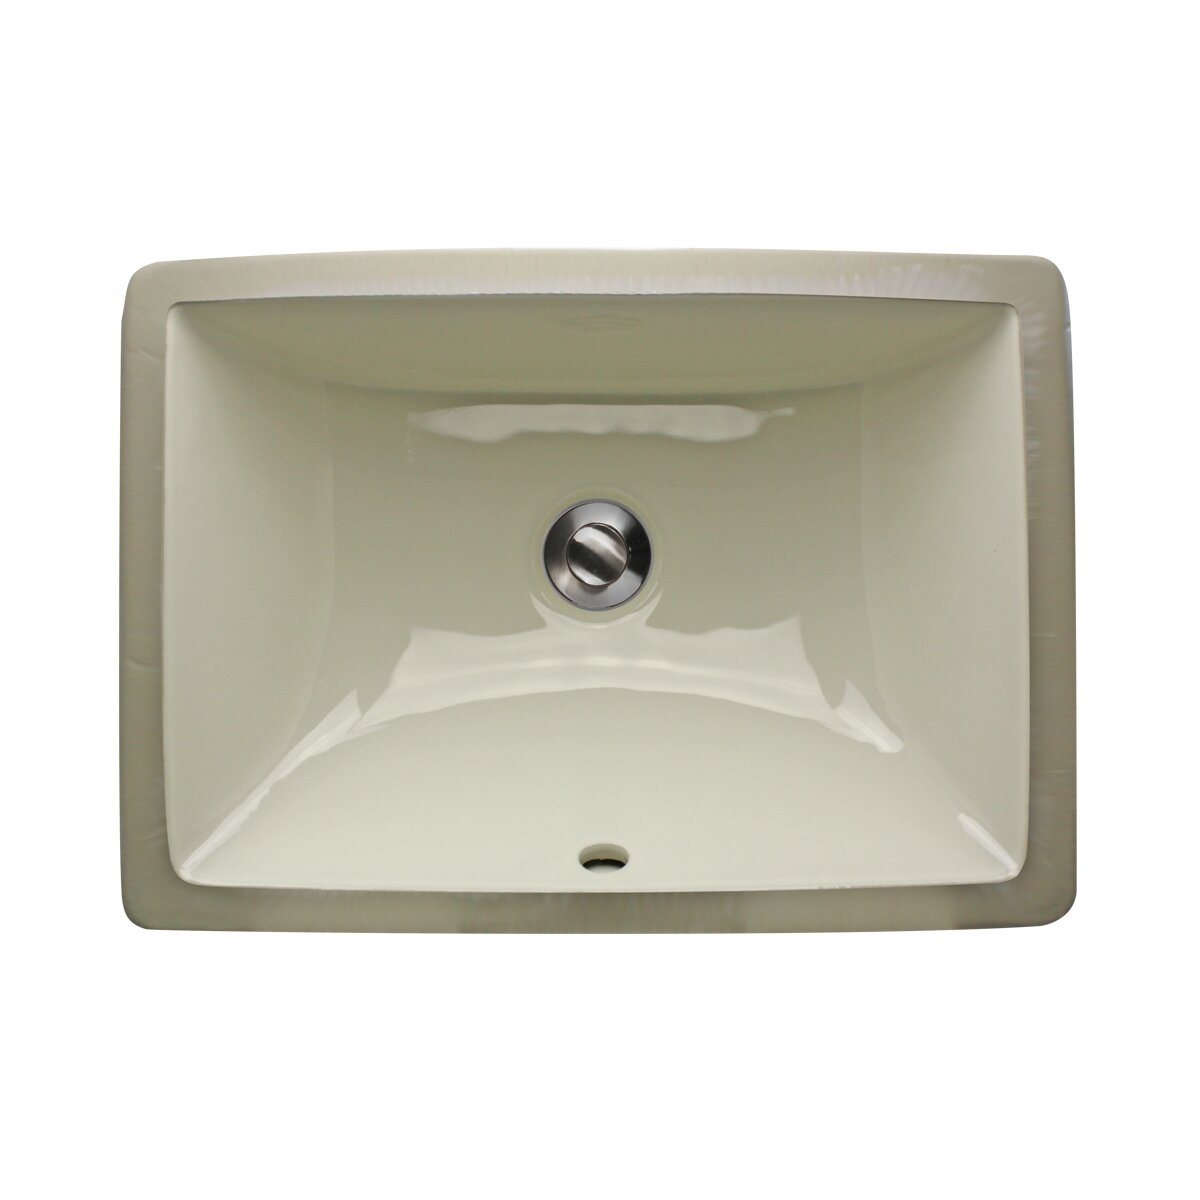 Nantucket Sinks Great Point Rectangle Ceramic Undermount